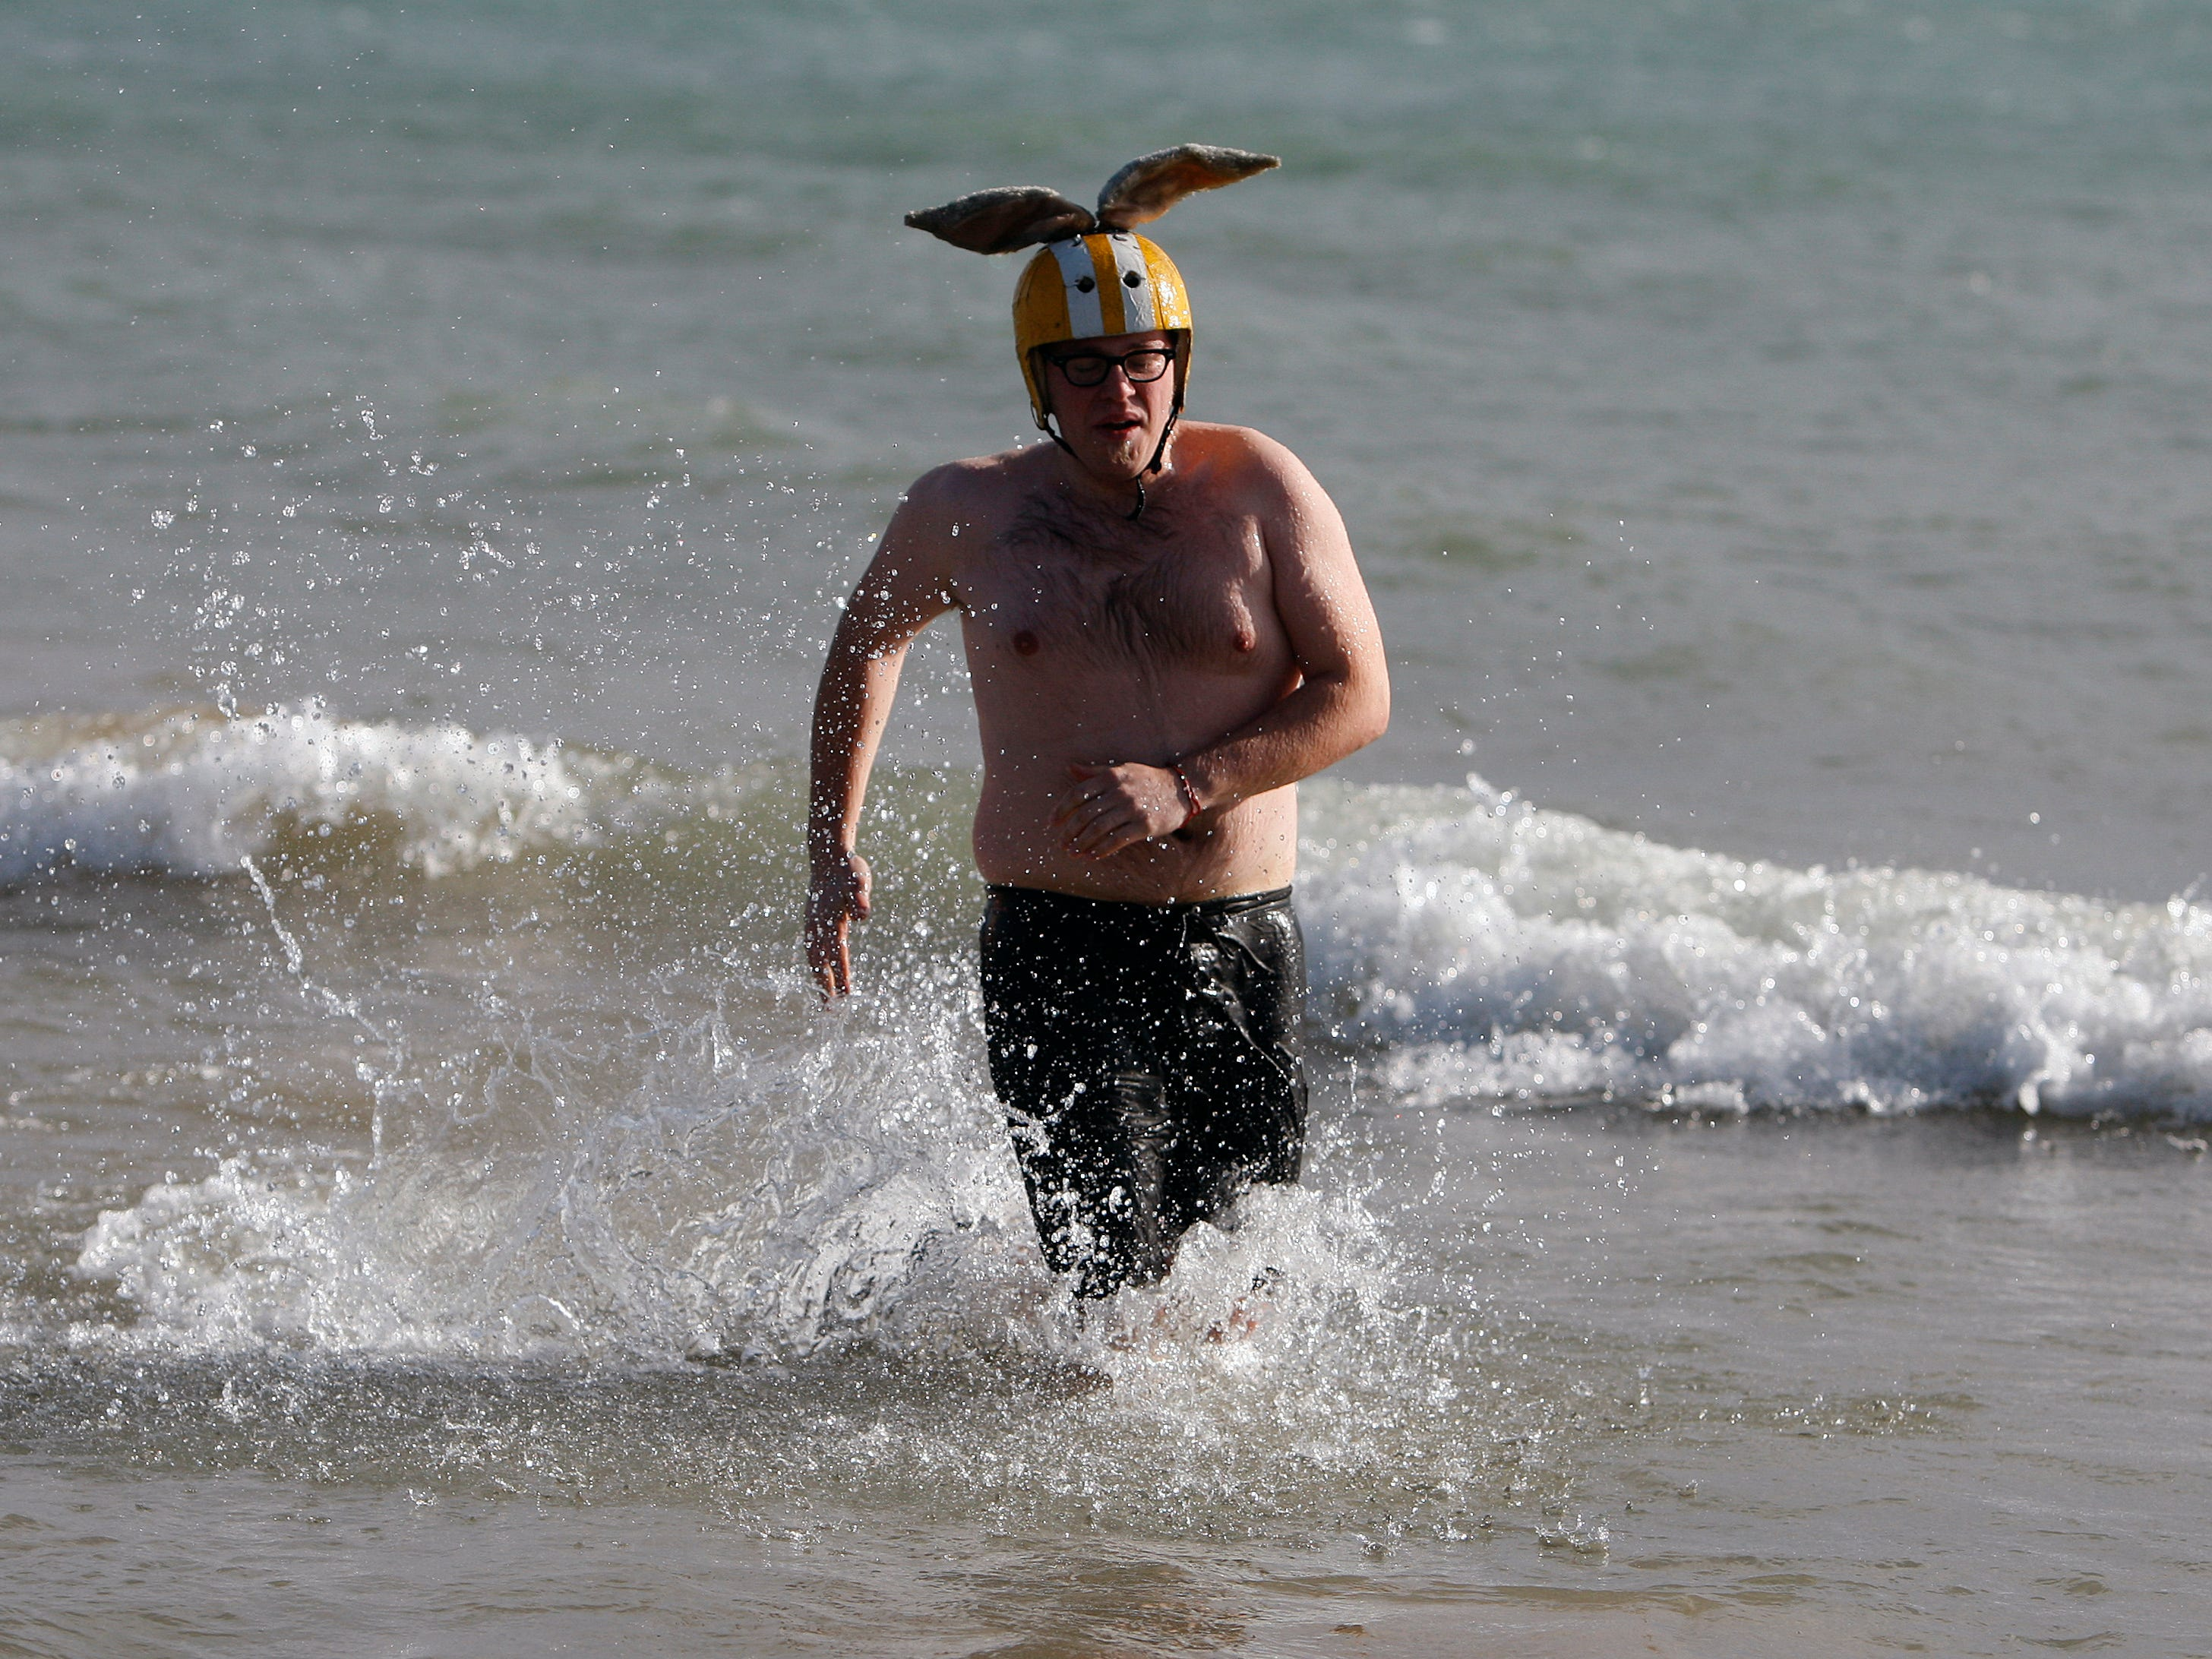 A man tries to take wing during the Polar Bear Plunge at Bradford Beach on Jan. 1, 2011.